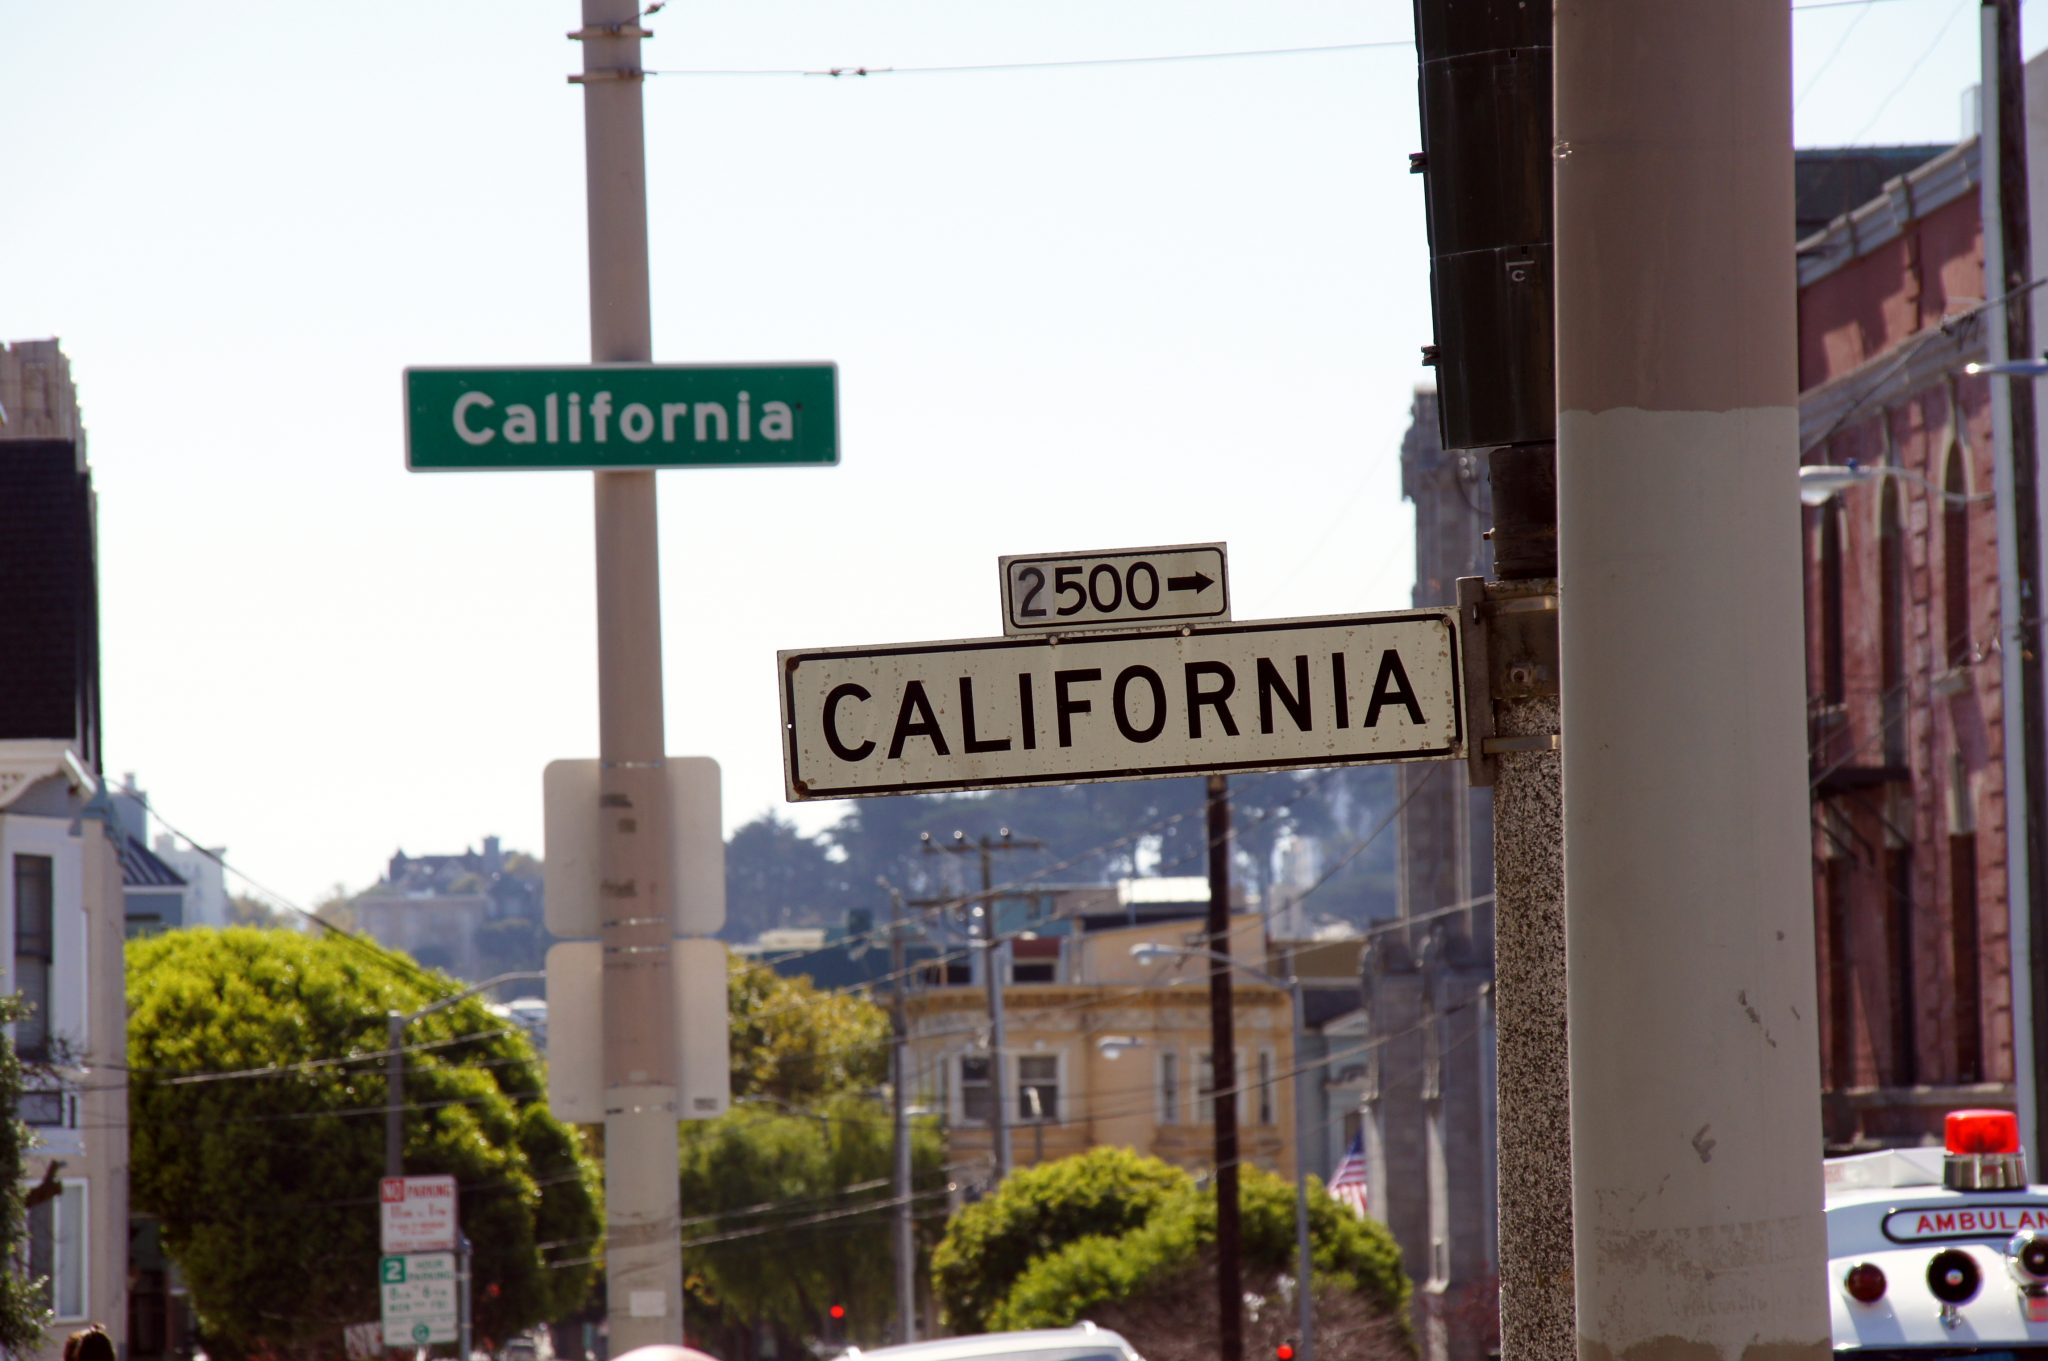 California Street sign in San Francisco